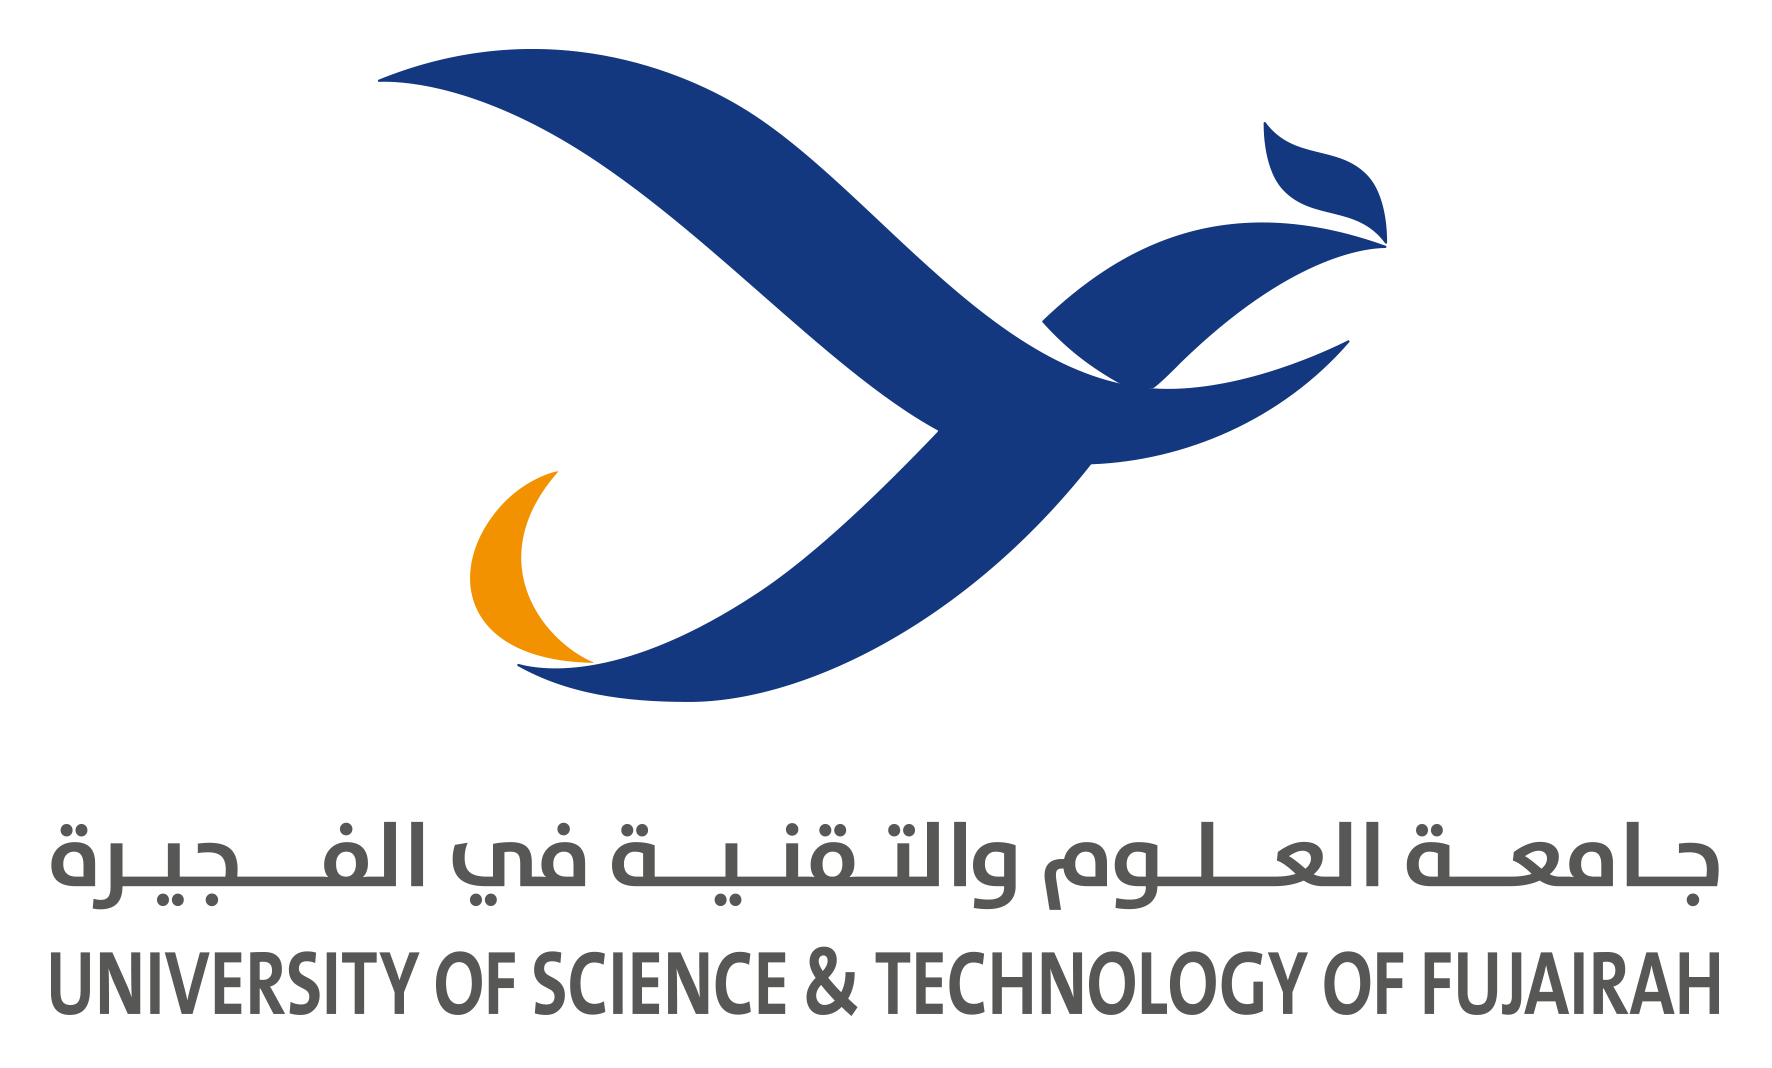 University of Science and Technology of Fujairah